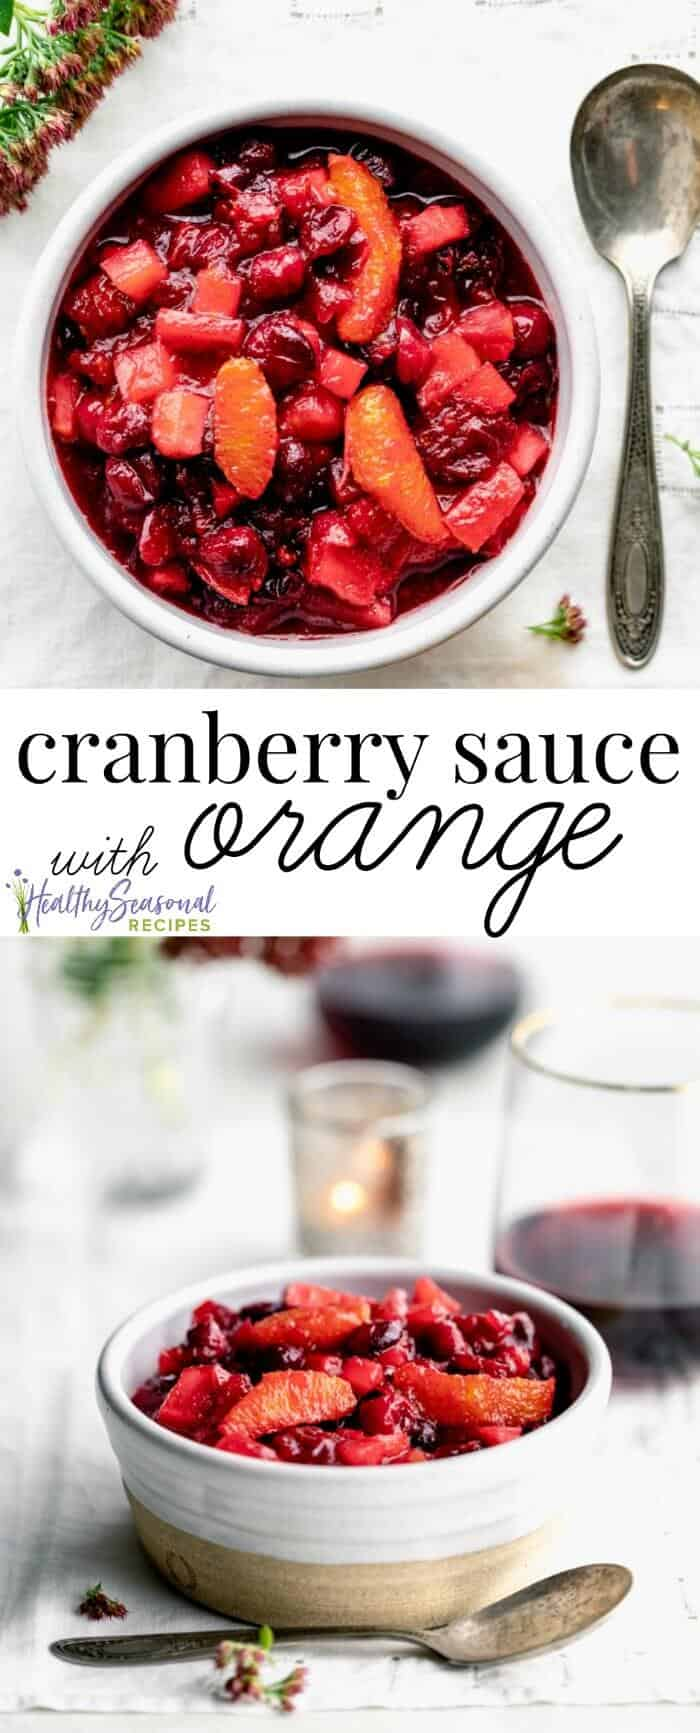 cranberry sauce with orange